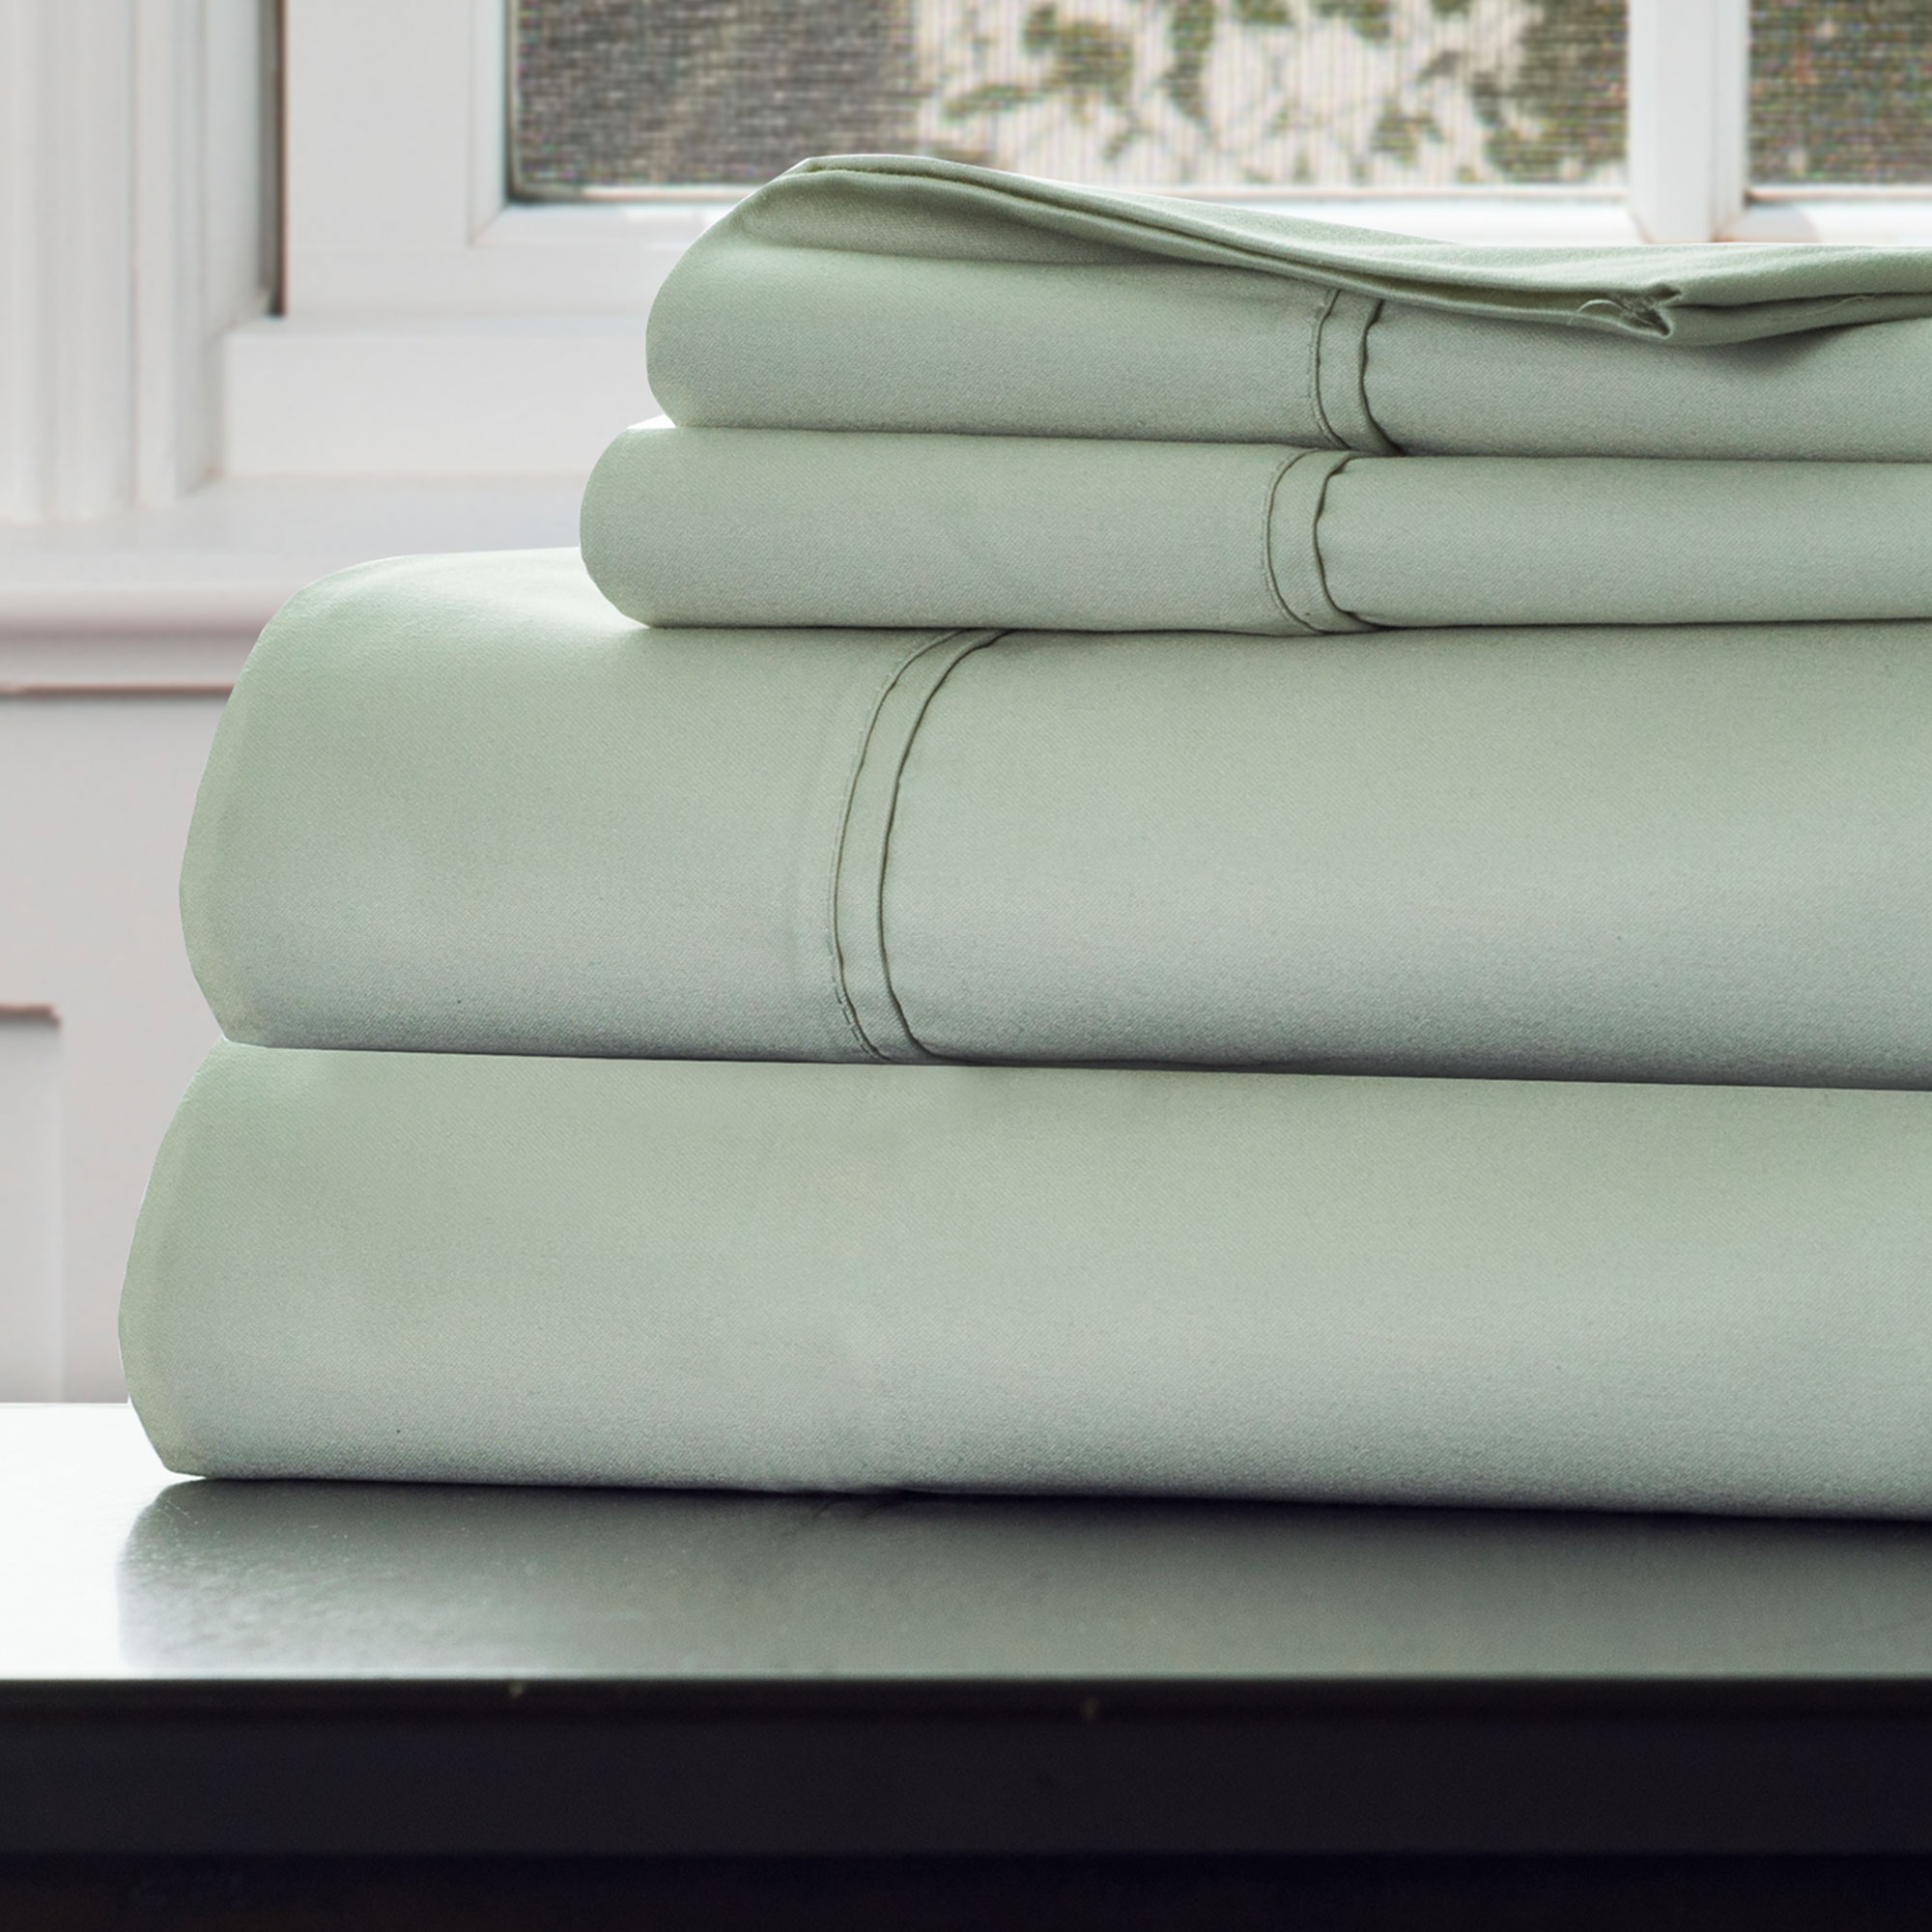 1000 Thread Count Sheets King Lavish Home 1000 Tc Cotton Rich Sateen Sheet Set King Green